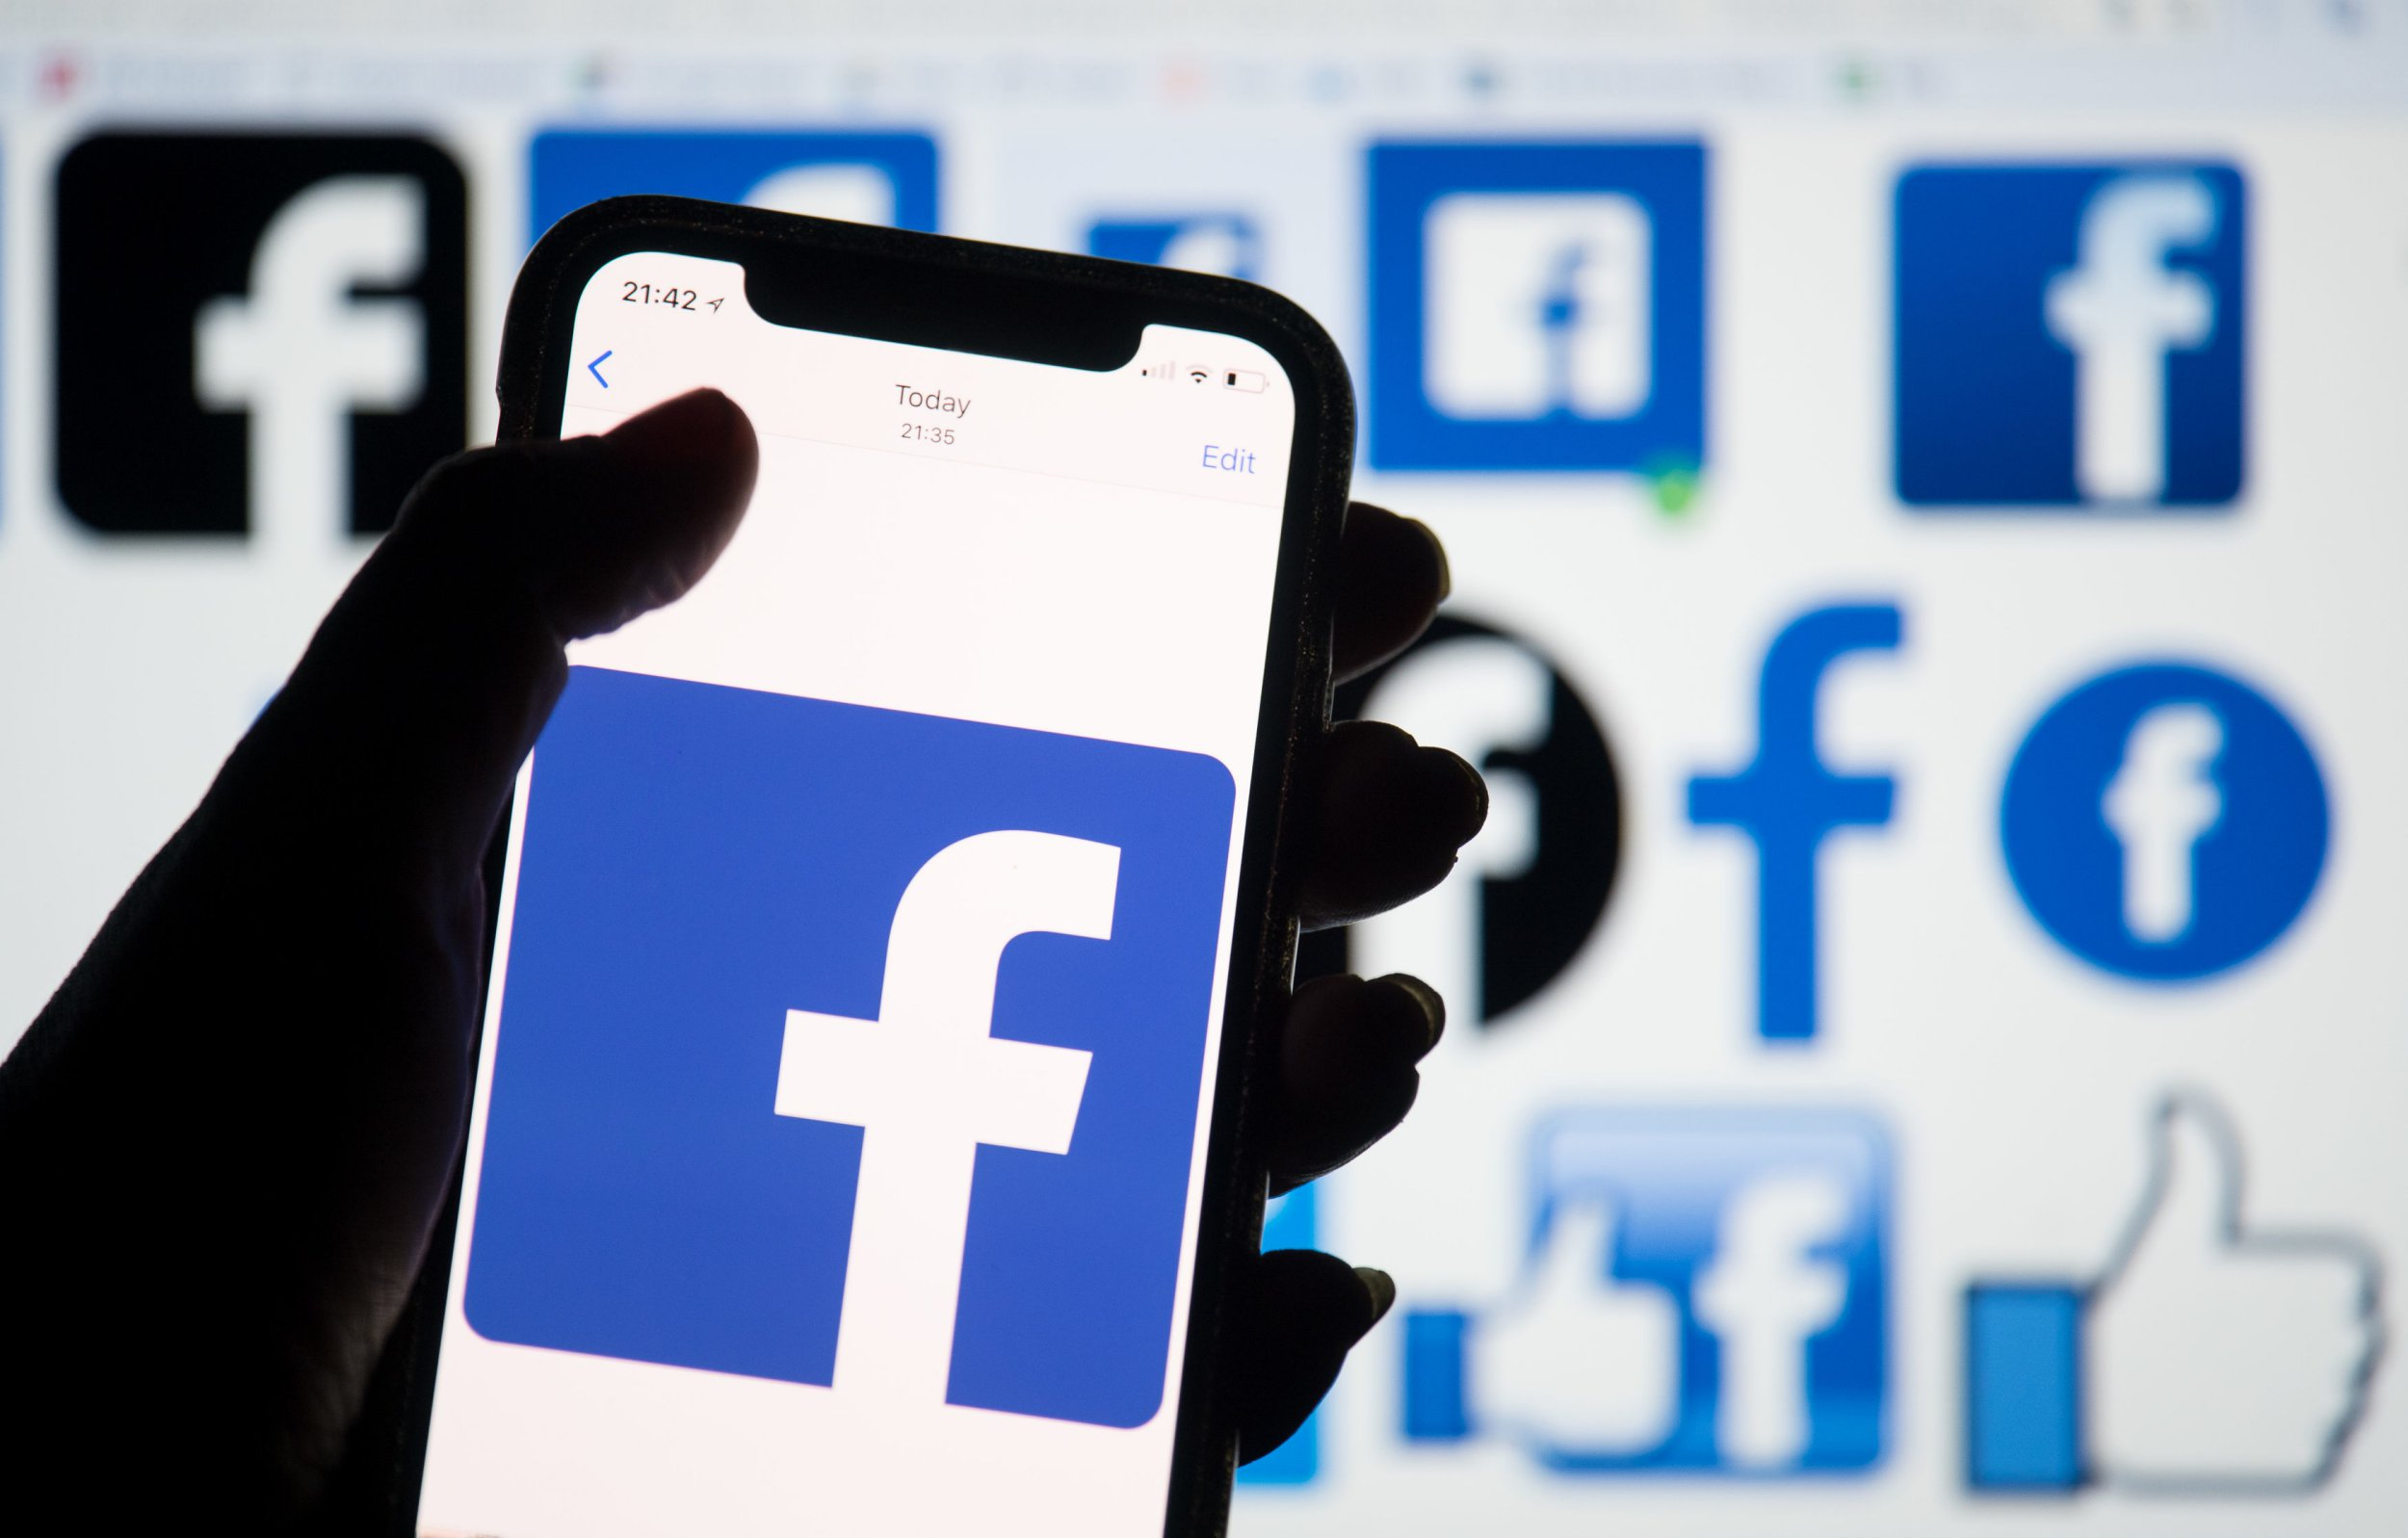 File photo dated 25/03/18 of the Facebook logo displayed on a smartphone, as the social networking site has banned far-right groups including the British National Party (BNP) and the English Defence League (EDL) from having any presence on the social network for violating the site's rules around promoting hate and violence. PRESS ASSOCIATION Photo. Issue date: Thursday April 18, 2019. The banned groups, which also includes Knights Templar International, Britain First and the National Front as well as key members of their leadership, have been removed from both Facebook or Instagram. See PA story TECHNOLOGY Hate. Photo credit should read: Dominic Lipinski/PA Wire